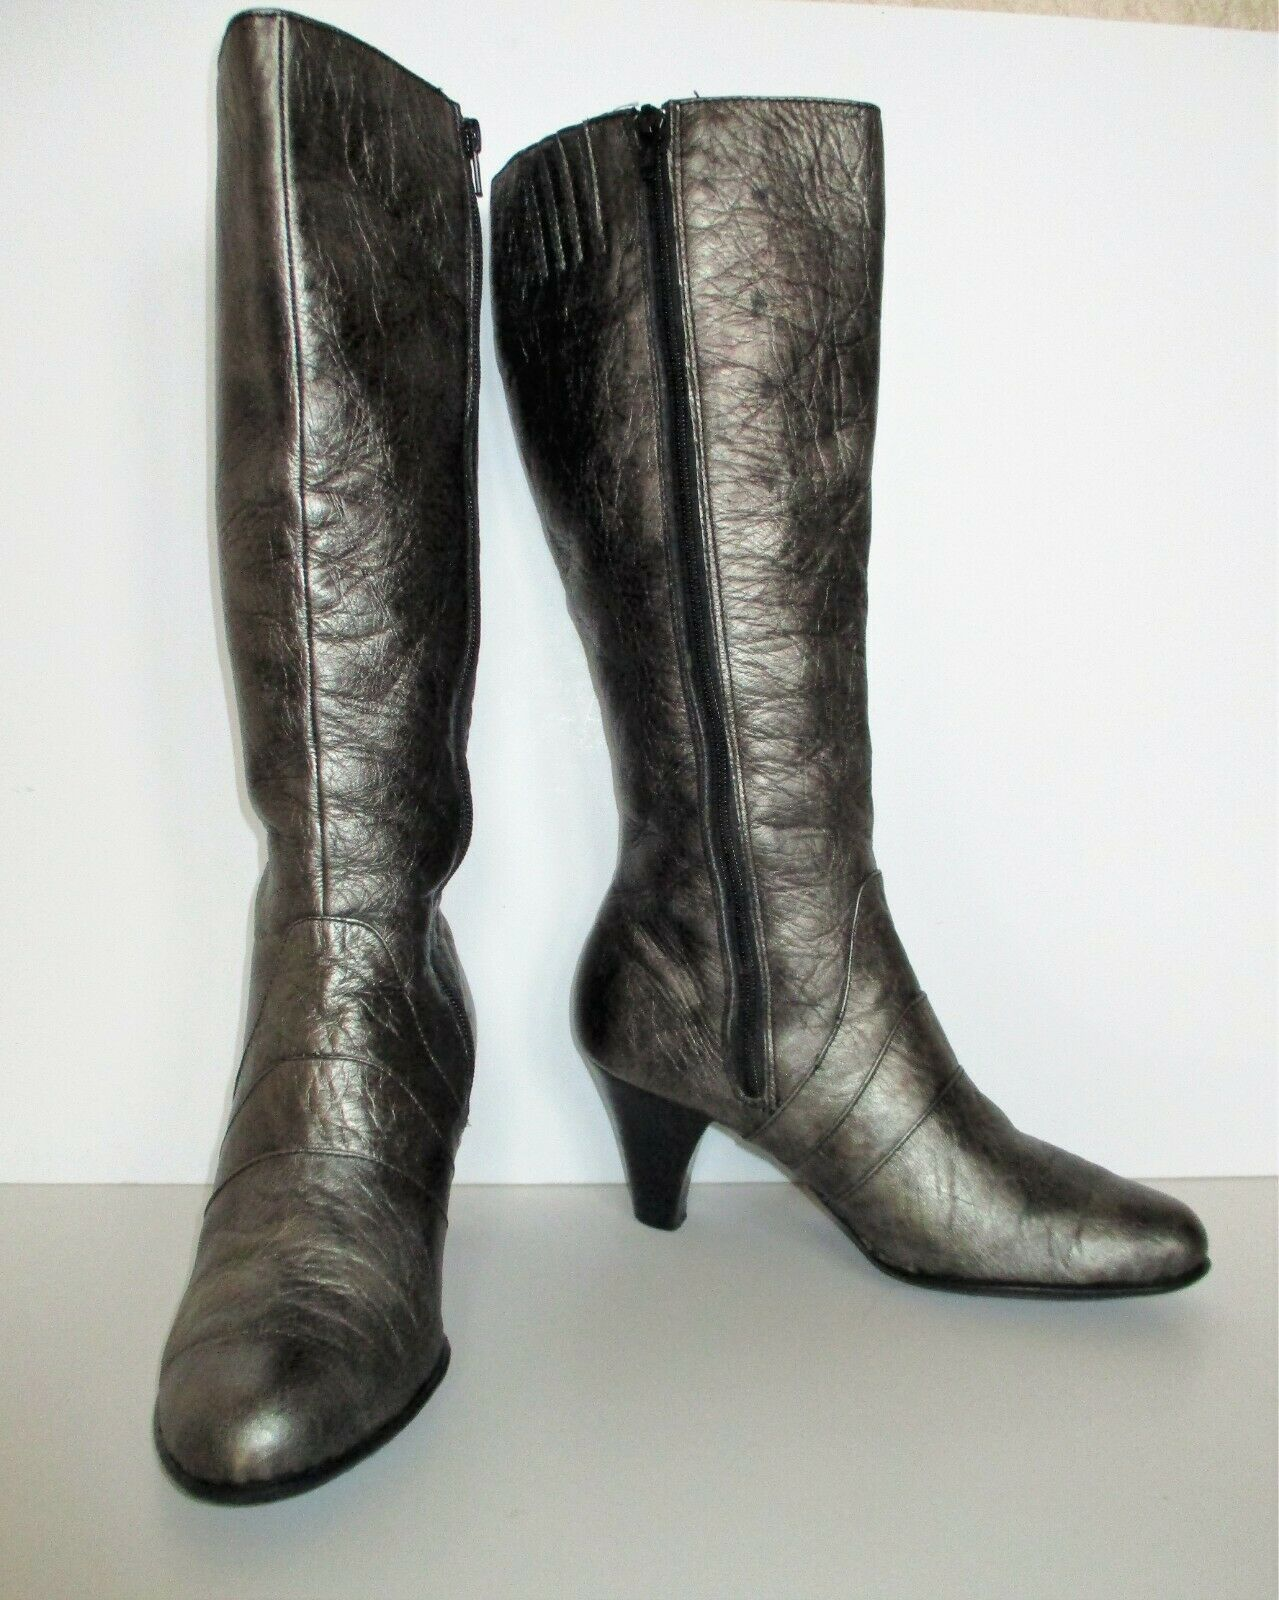 Primary image for Born Boots Size 8 1/2 Women gunmetal textured leather knee high